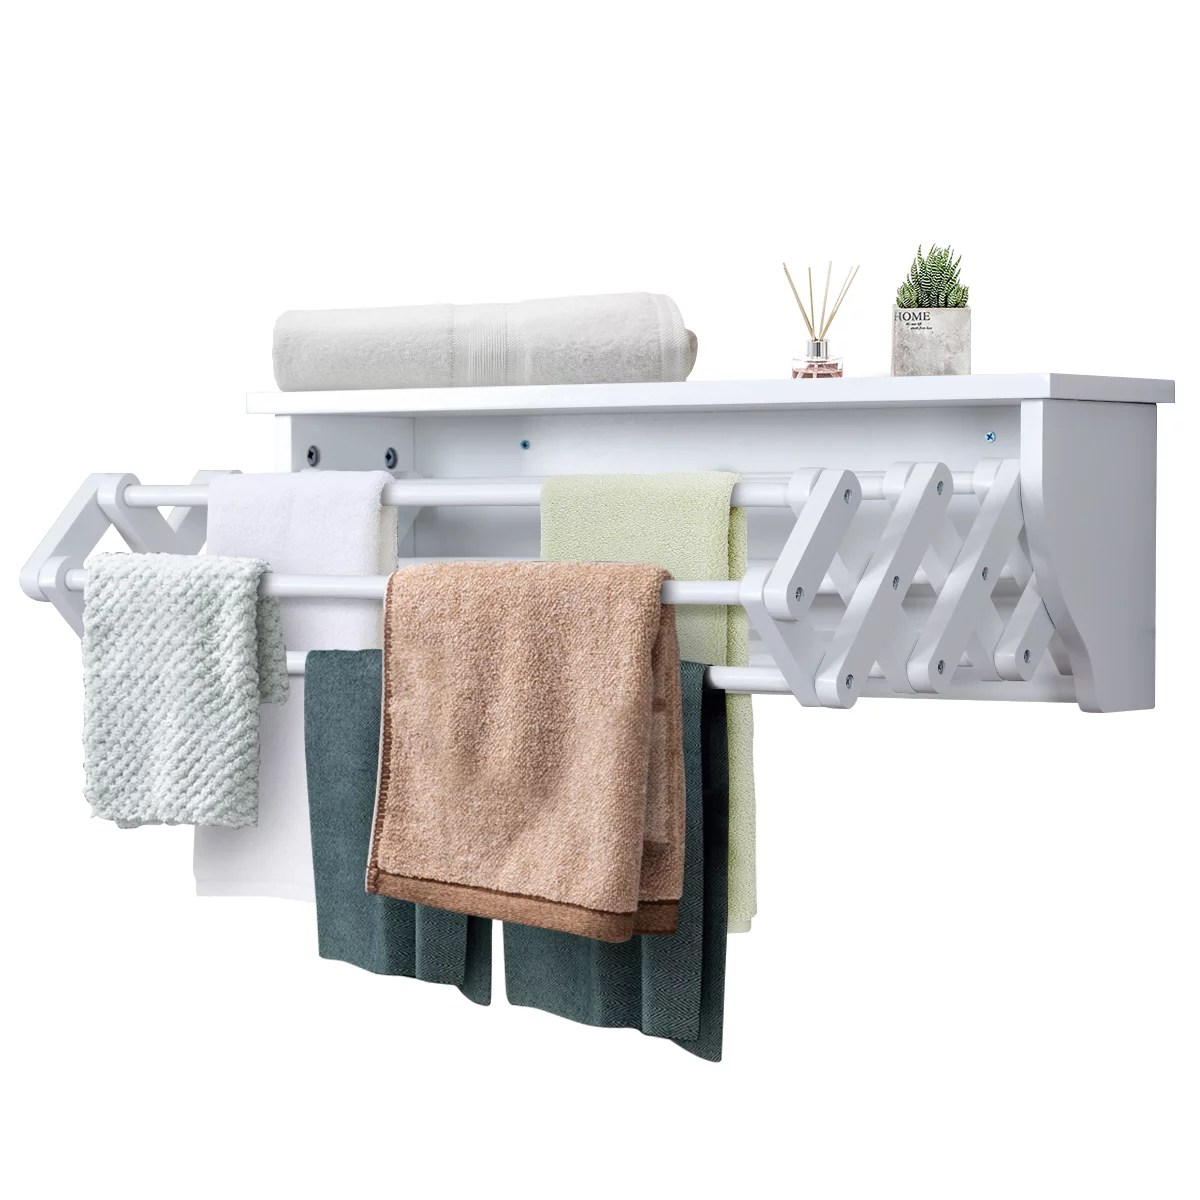 costway wall mounted drying rack folding clothes towel laundry room storage shelf white